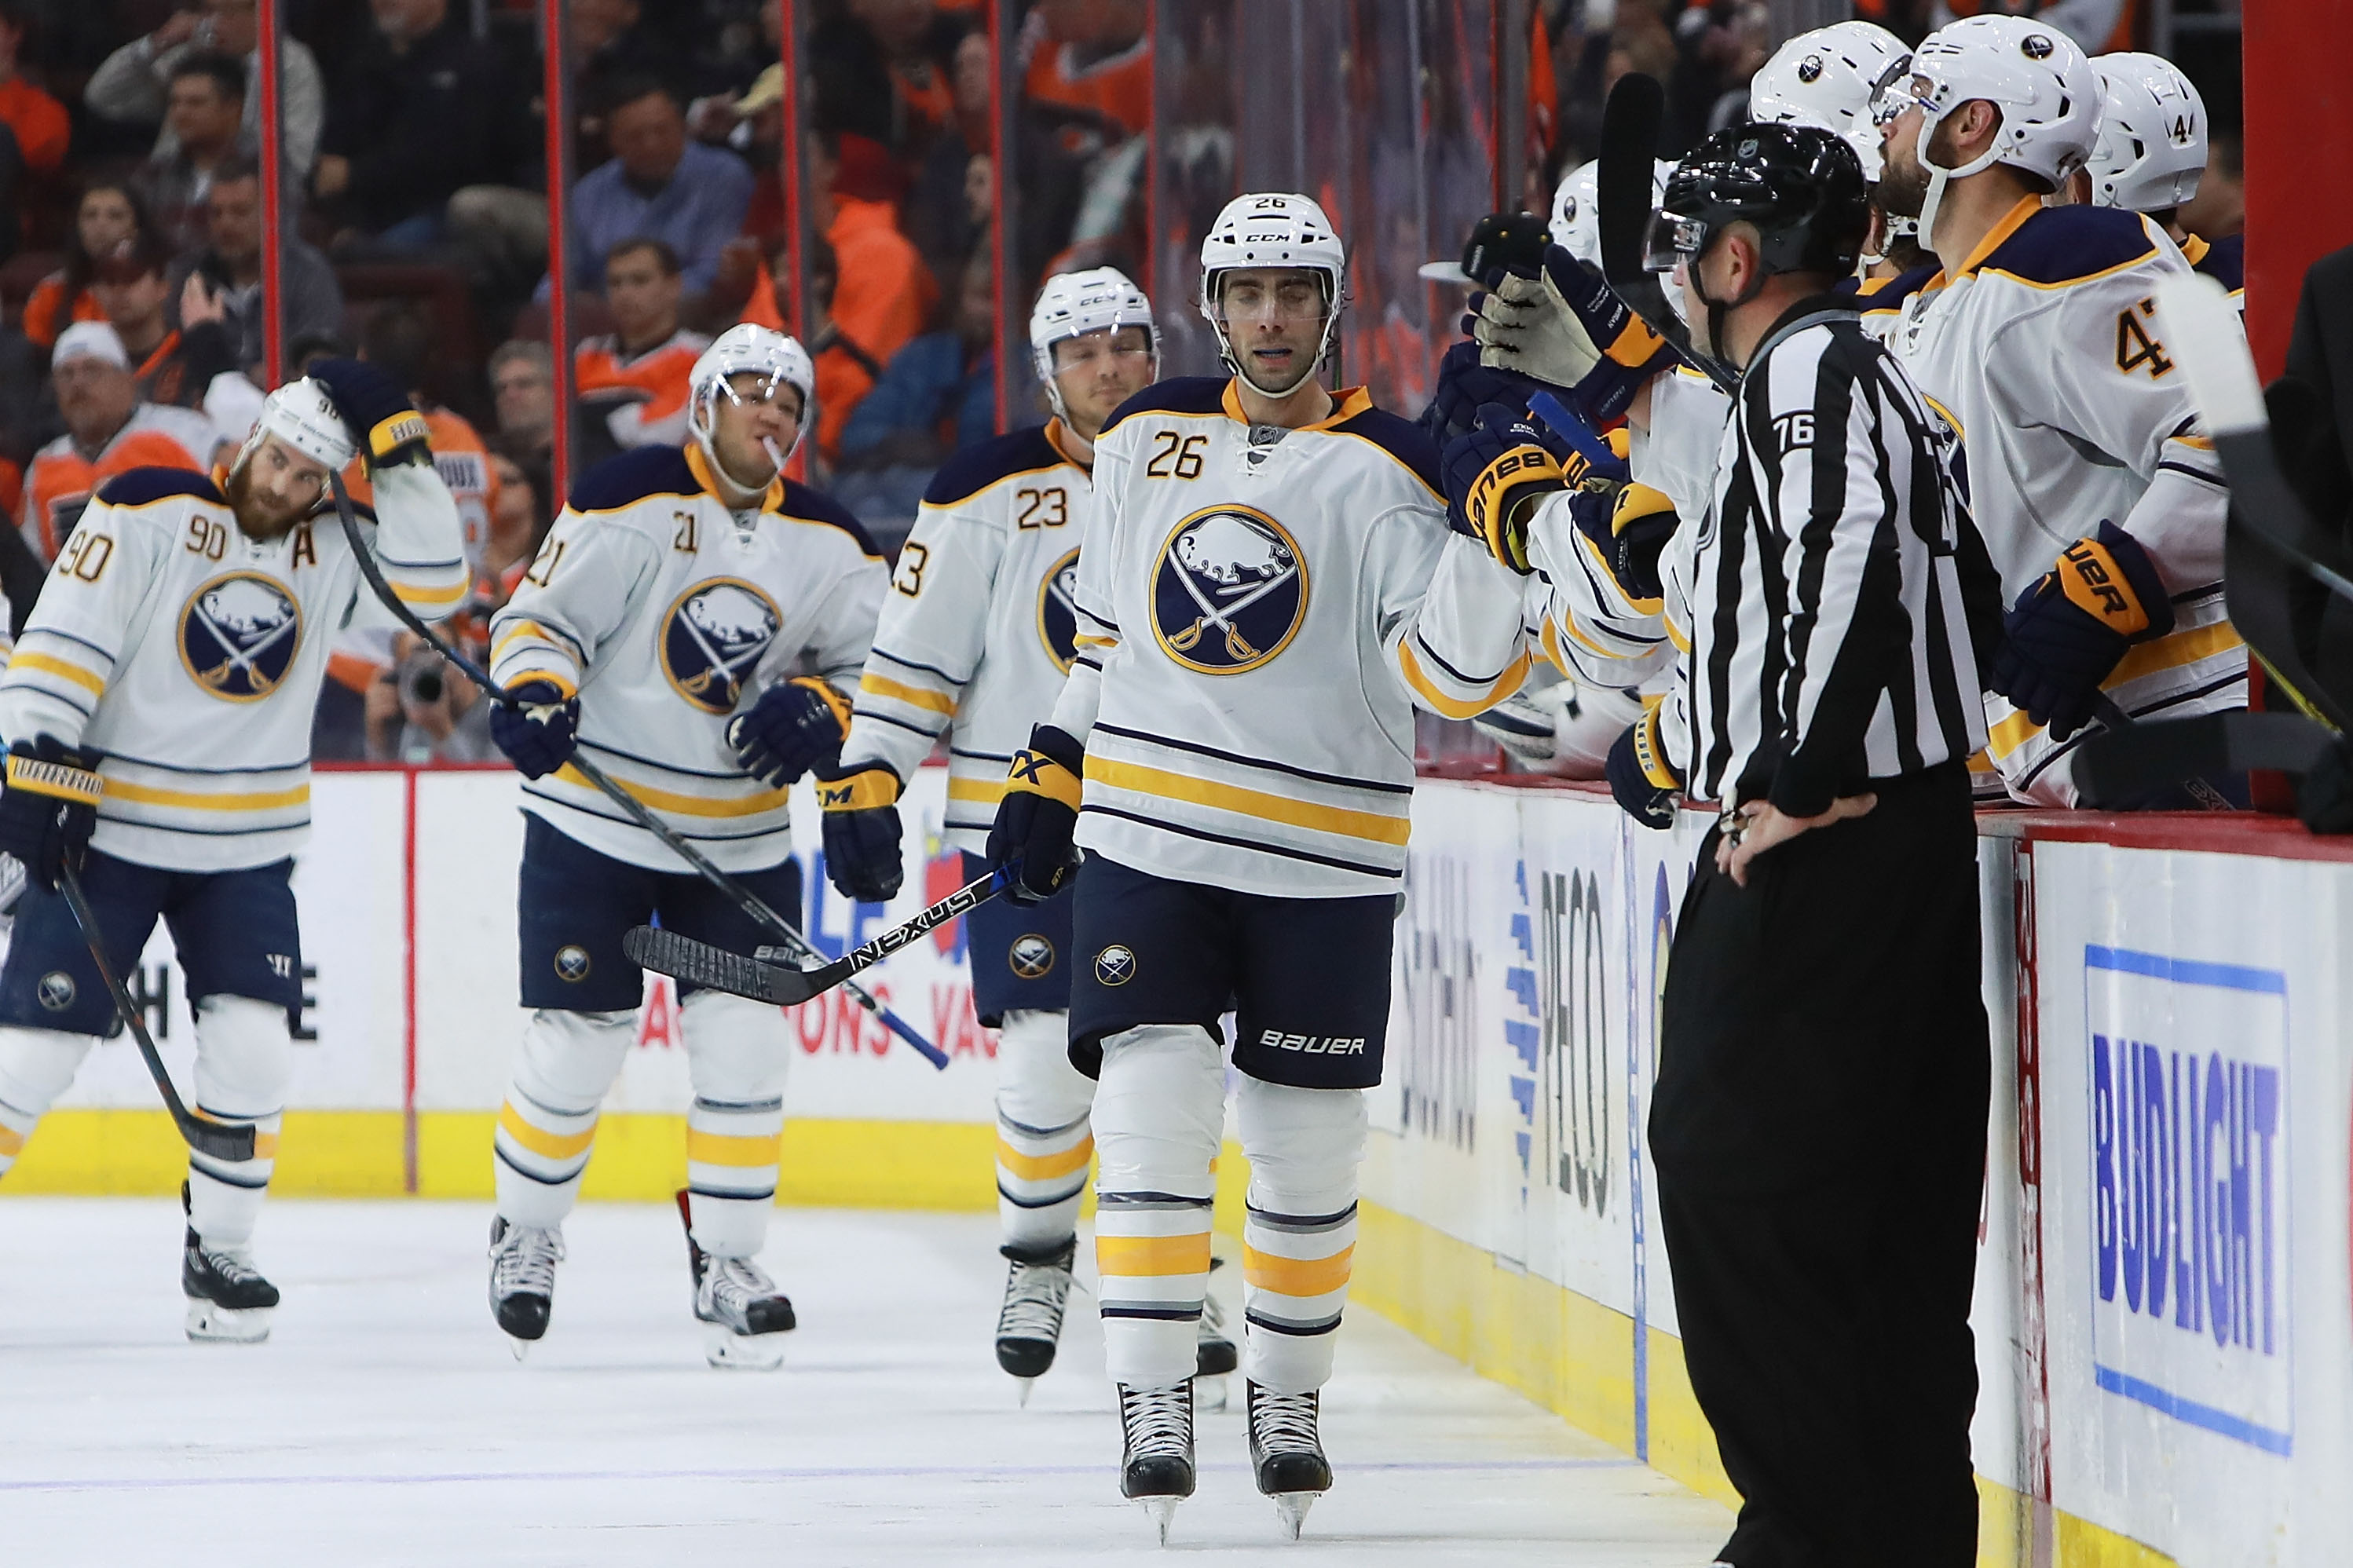 Matt Moulson scored twice to bring his goal total to a team-high four.  (Photo by Michael Reaves/Getty Images)